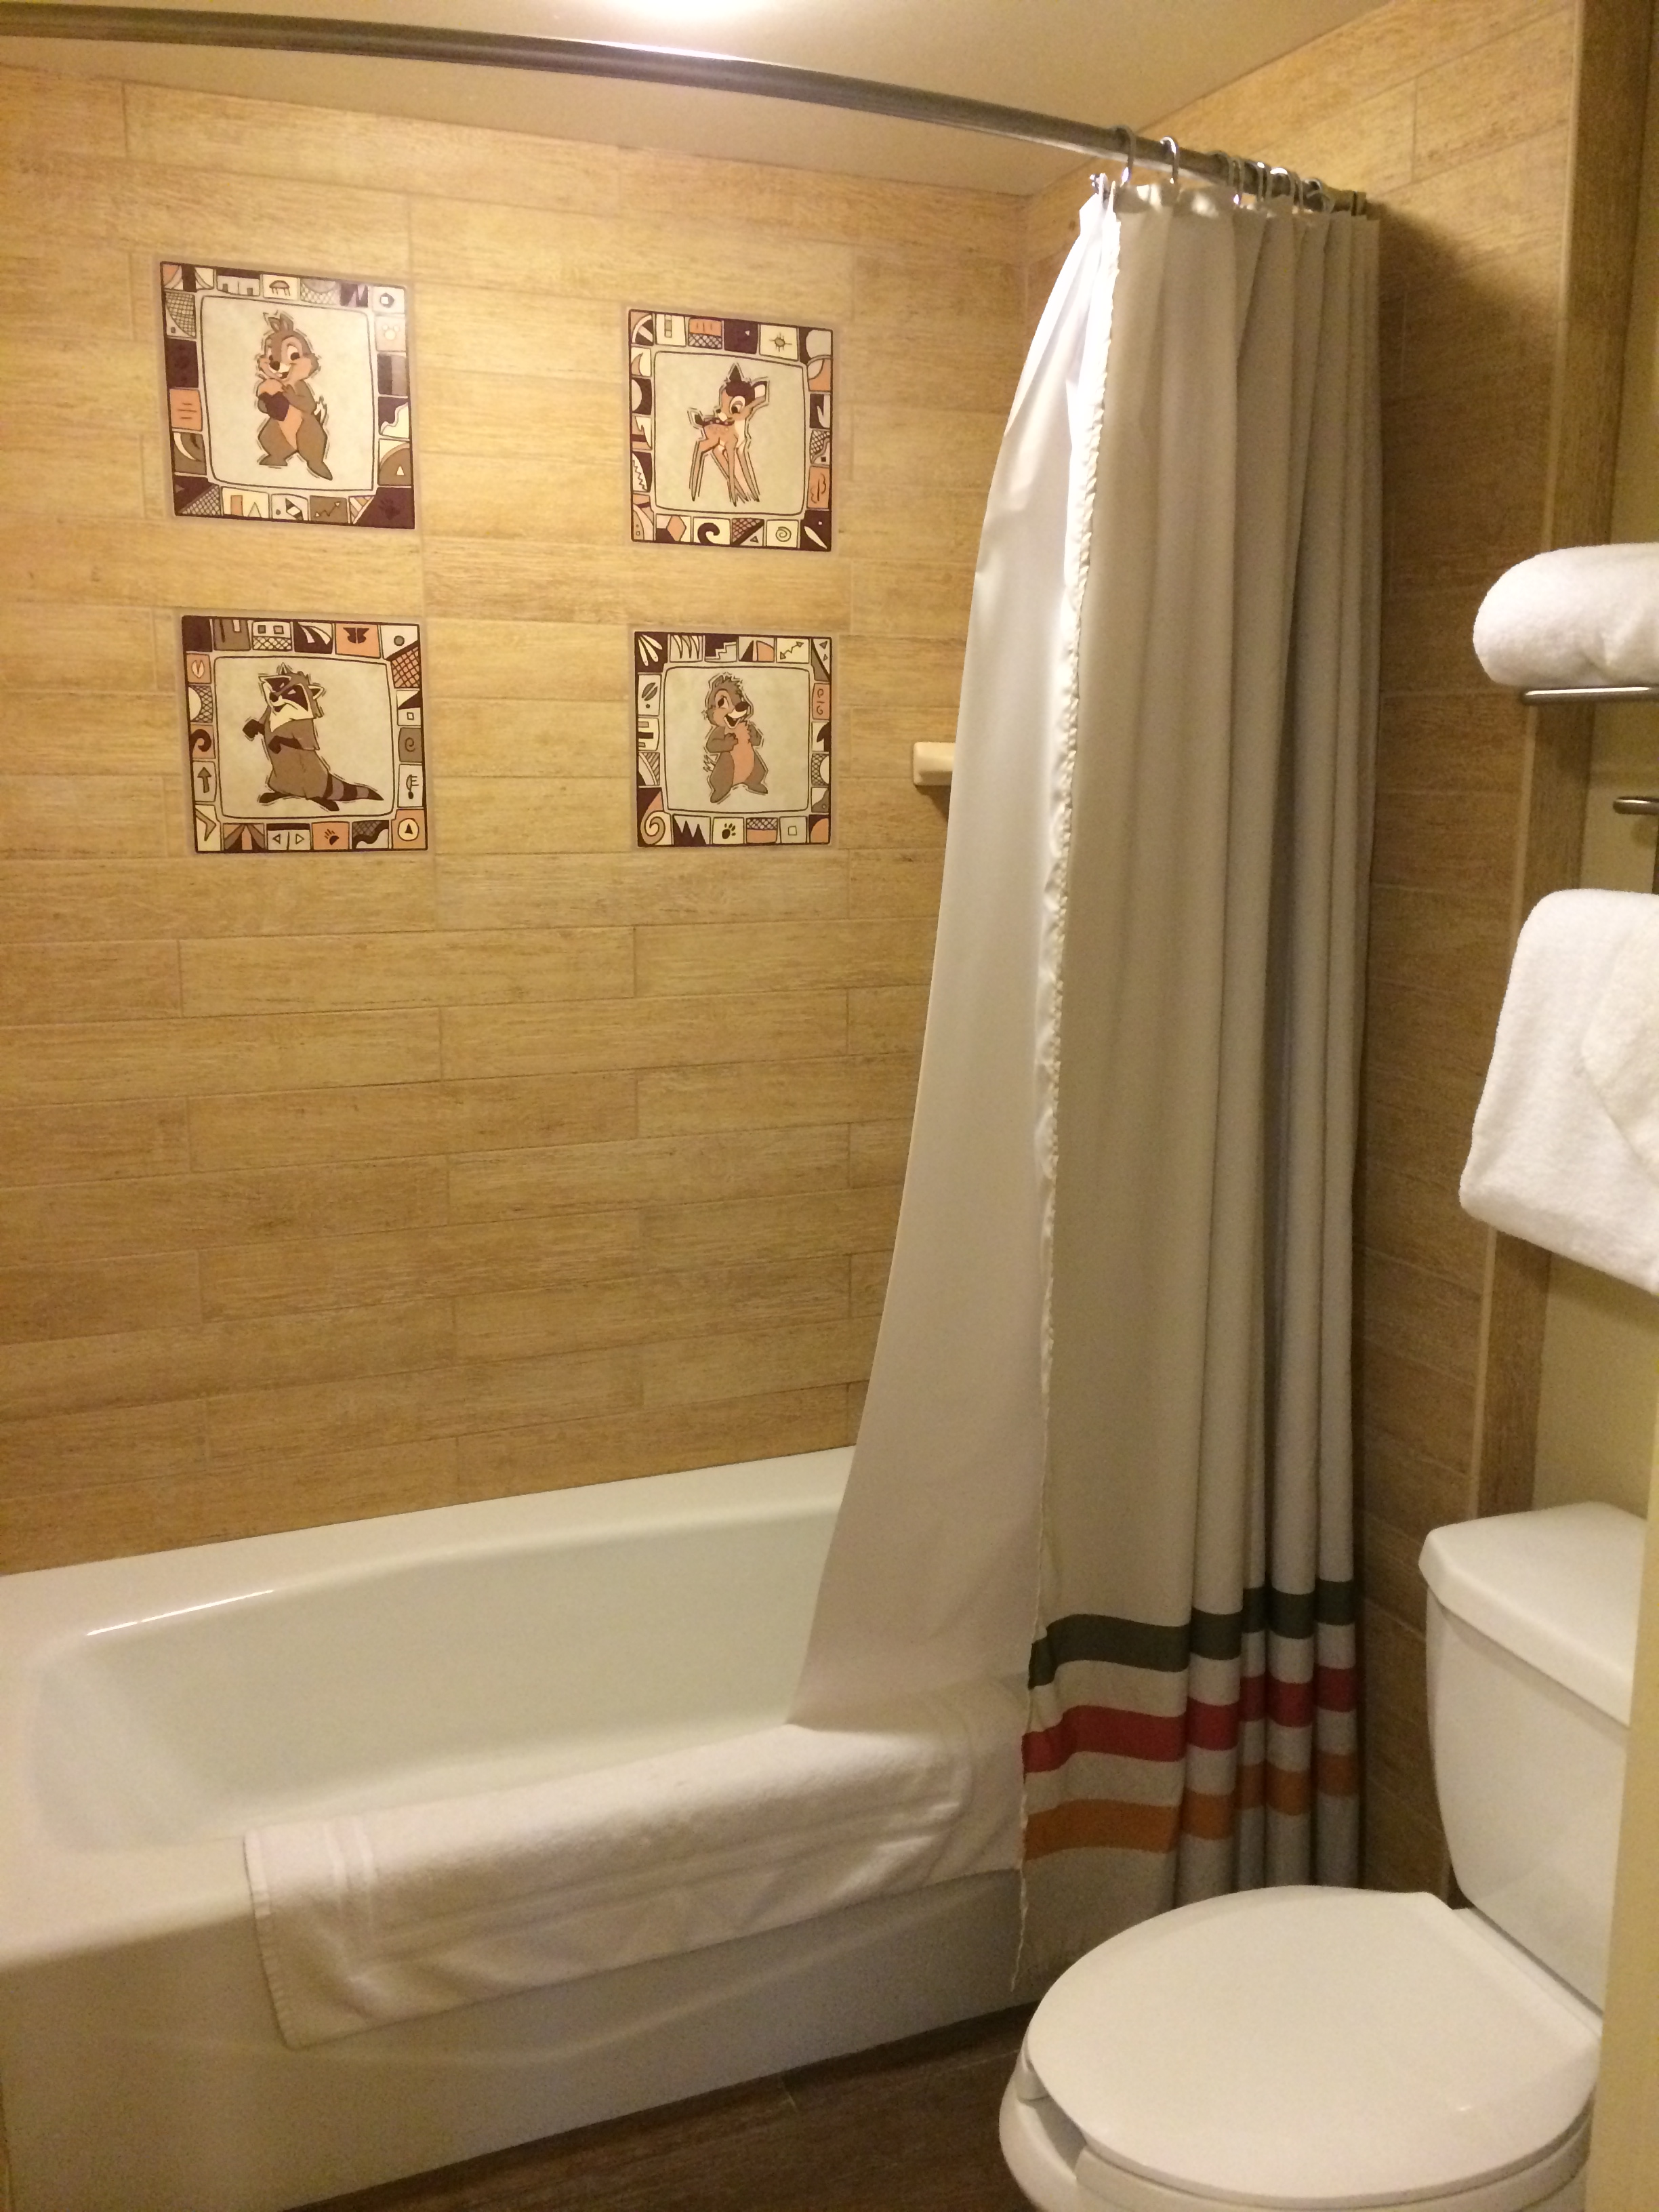 Disney Bathroom Room Photos From Our Recent Stay At Disneys Wilderness Lodge